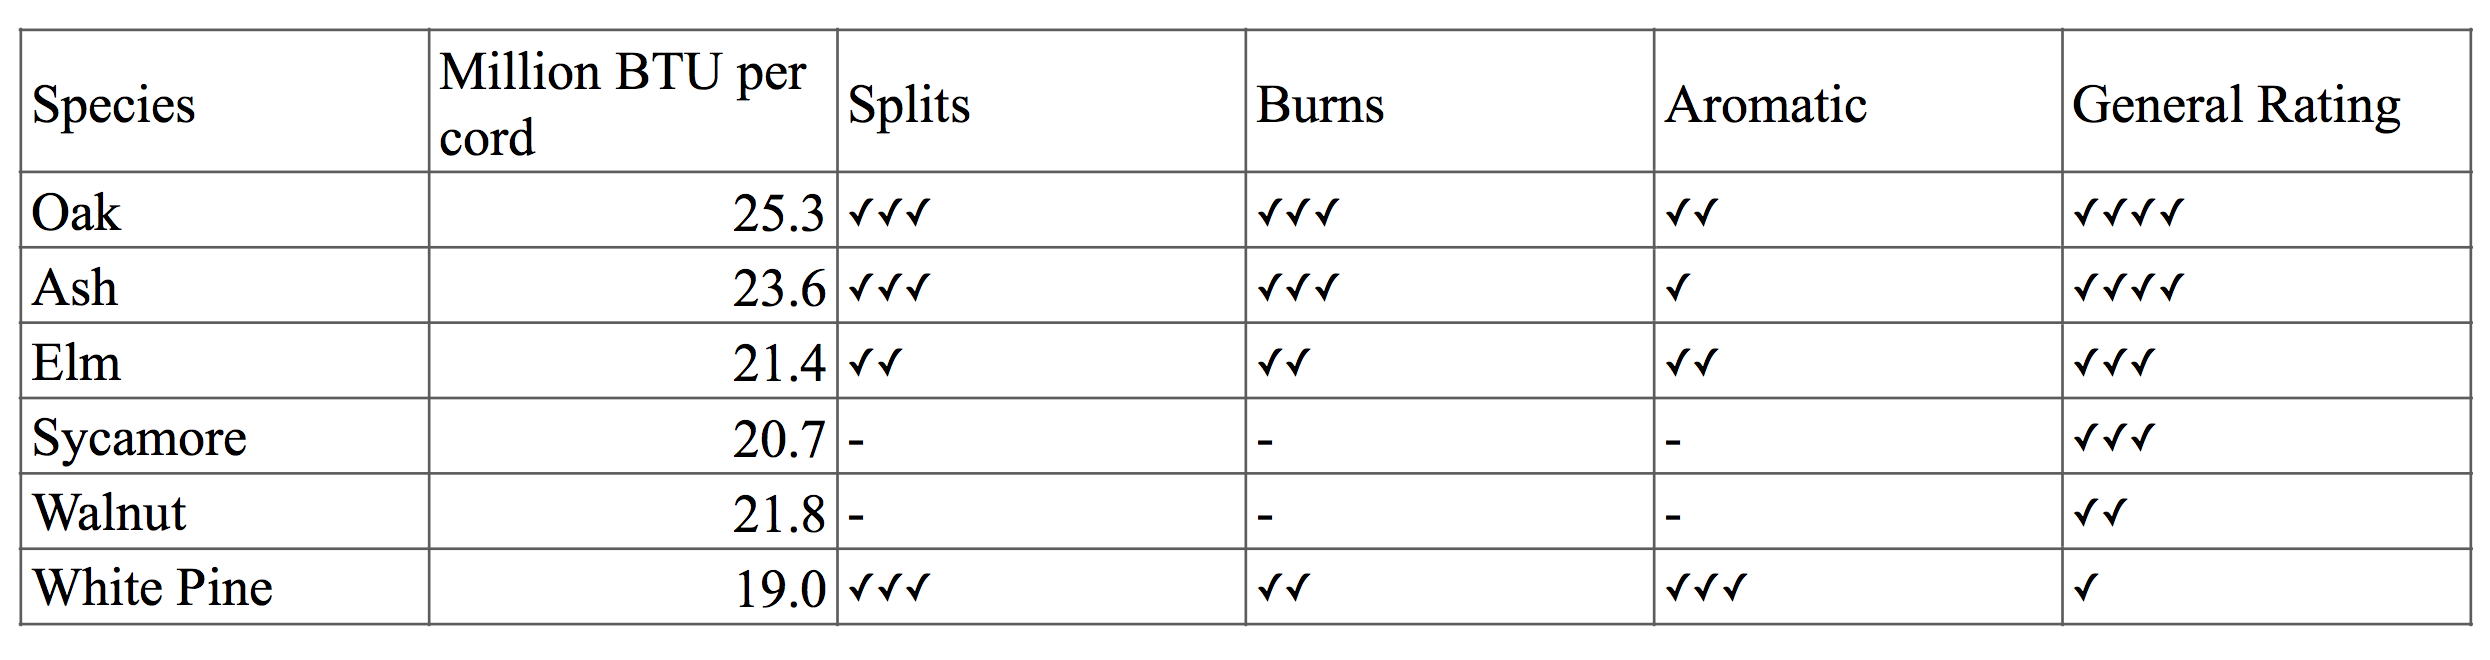 Burn quality chart created with data from a University of Maryland Extension Fact Sheet &fireplace, stove and wood burning furnace manufacturer JUCA. For a deeper dive visit  http://mb-soft.com/juca/print/firewood.html